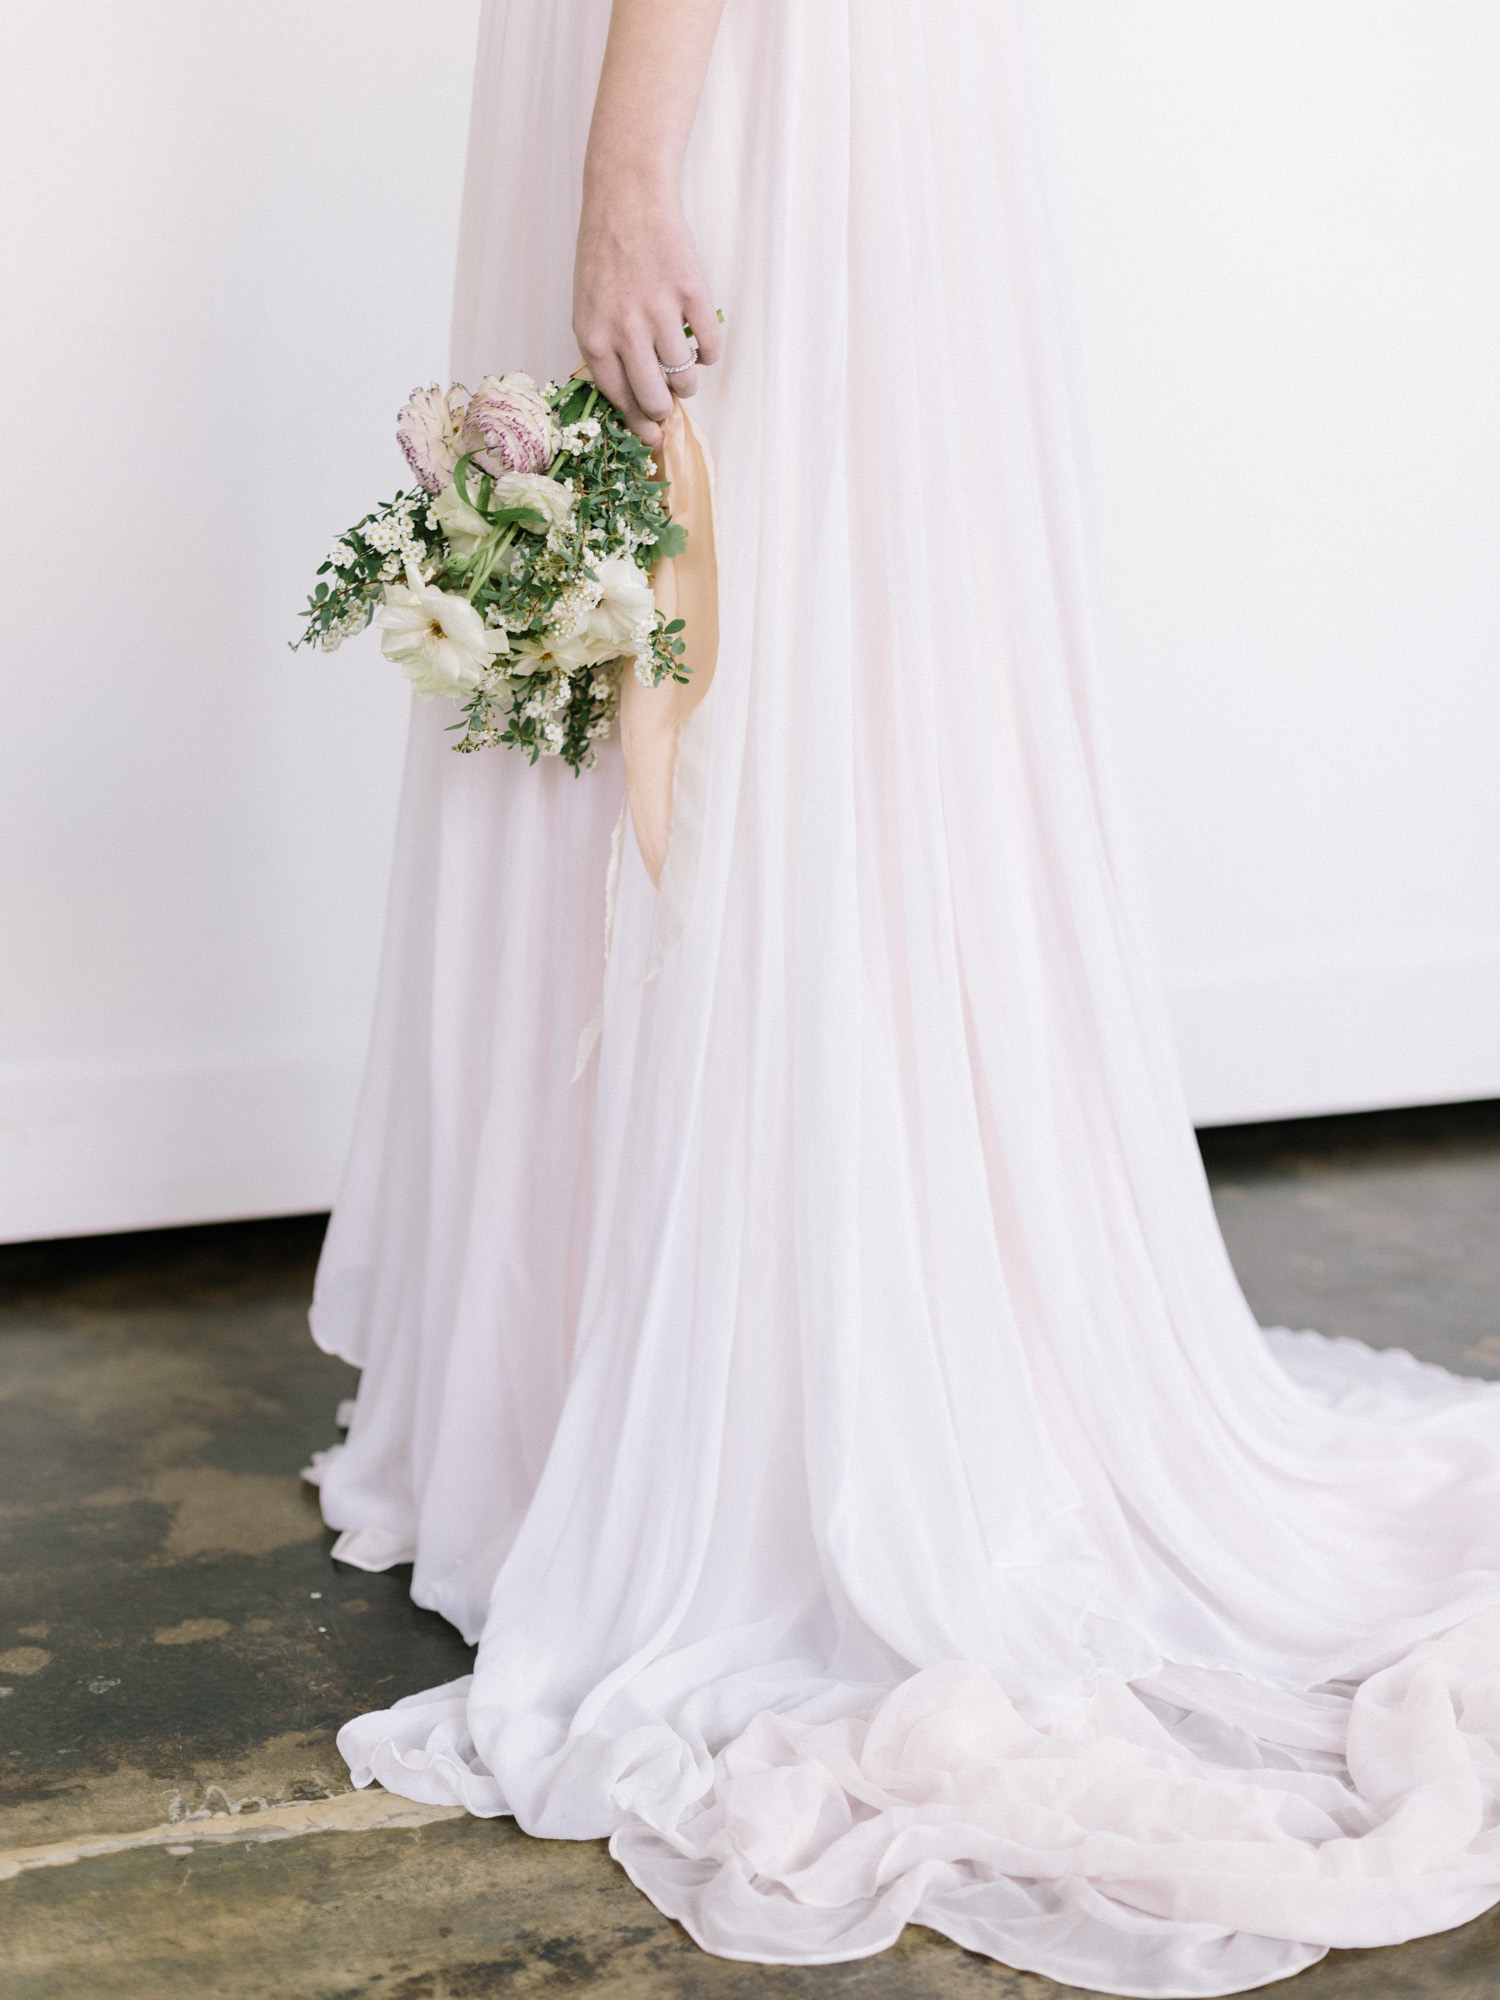 A small bouquet of wild roses and spring flowers is held against a blush silk wedding gown